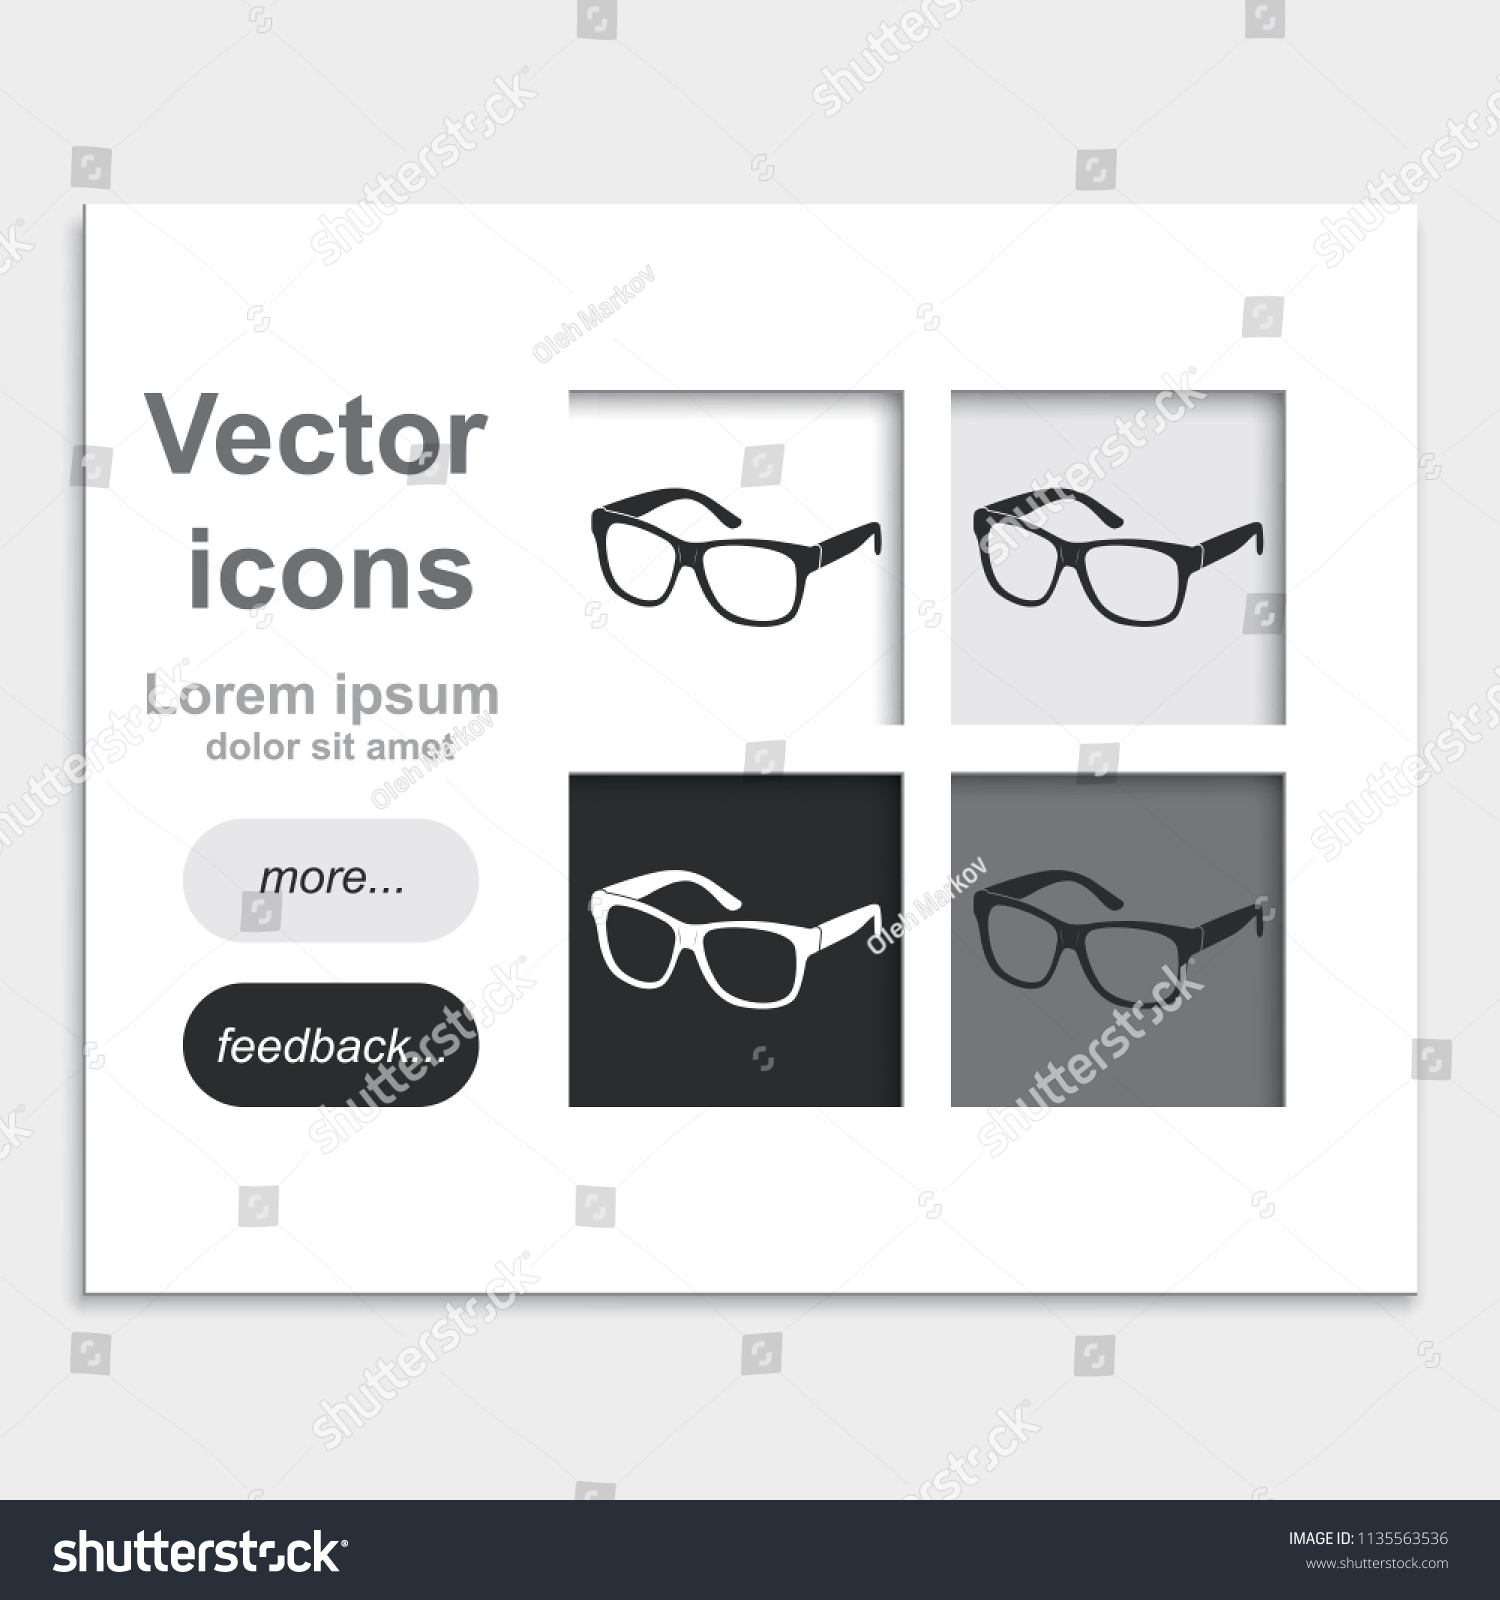 Hipster Glasses Placed On Web Page Stock Vector Royalty Free